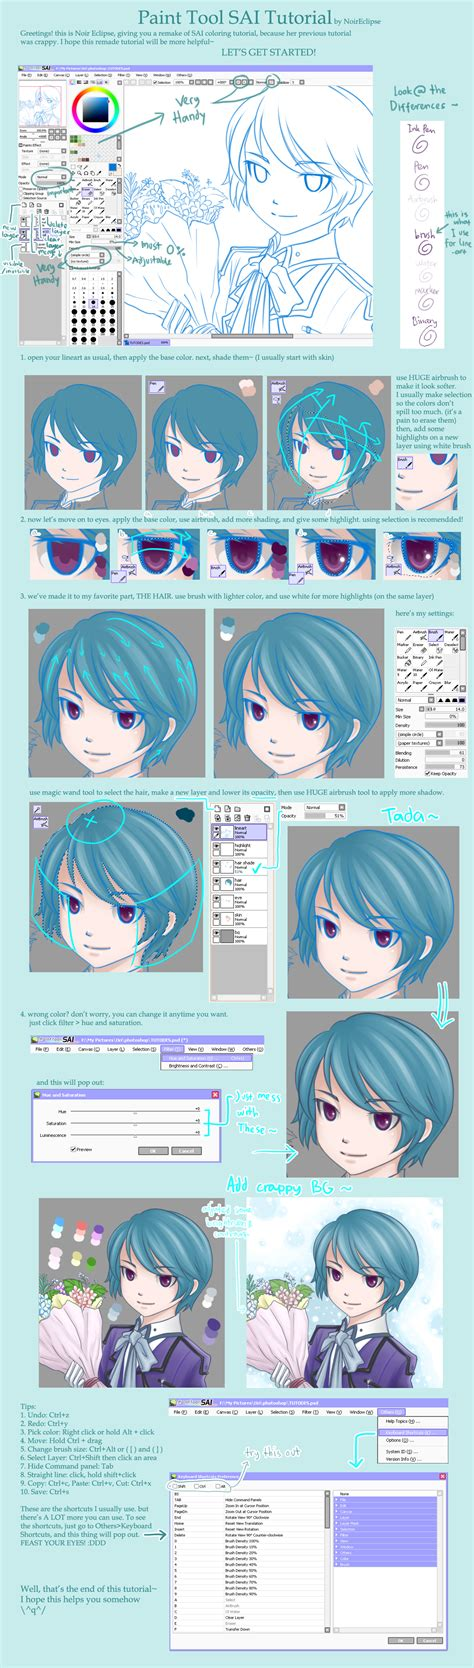 paint tool sai water tool tutorial paint tool sai tutorial by noireclipse on deviantart